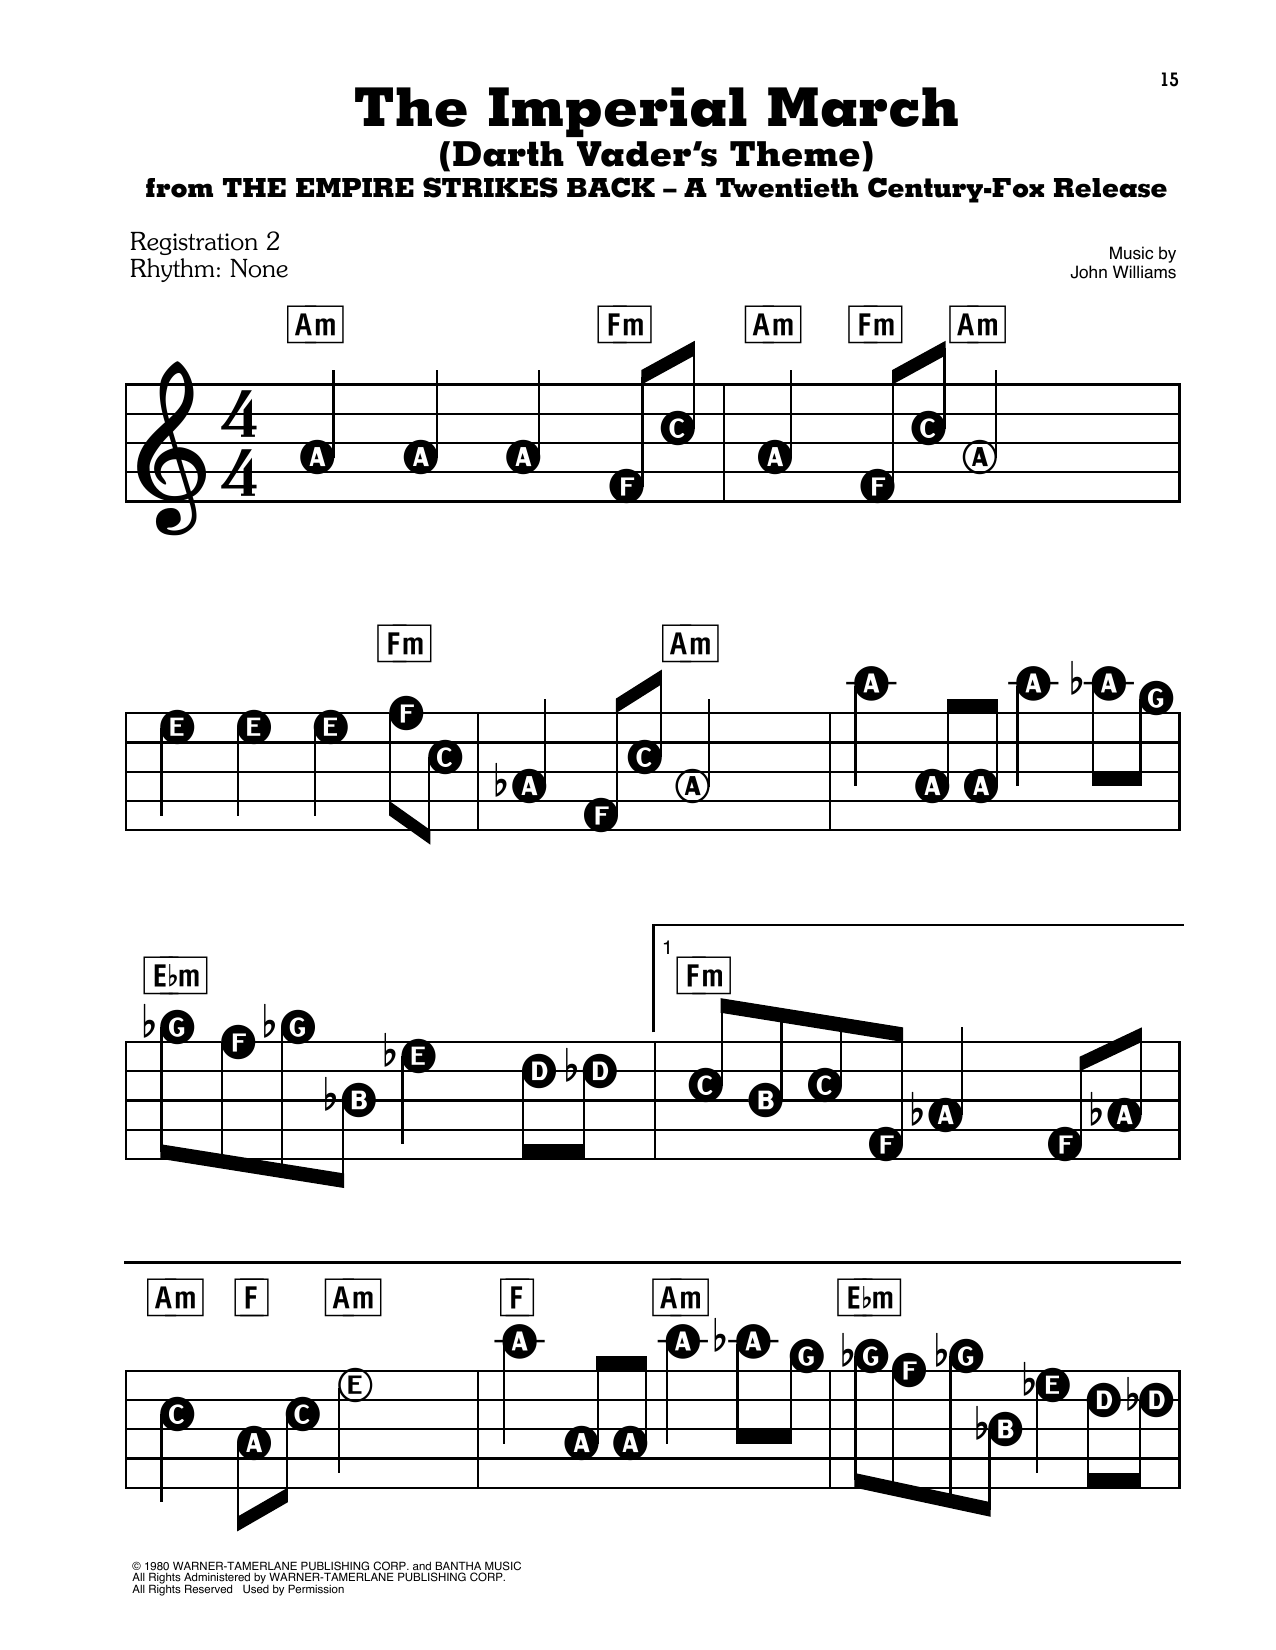 John Williams The Imperial March (Darth Vader's Theme) (from Star Wars: The Empire Strikes Back) sheet music notes and chords. Download Printable PDF.